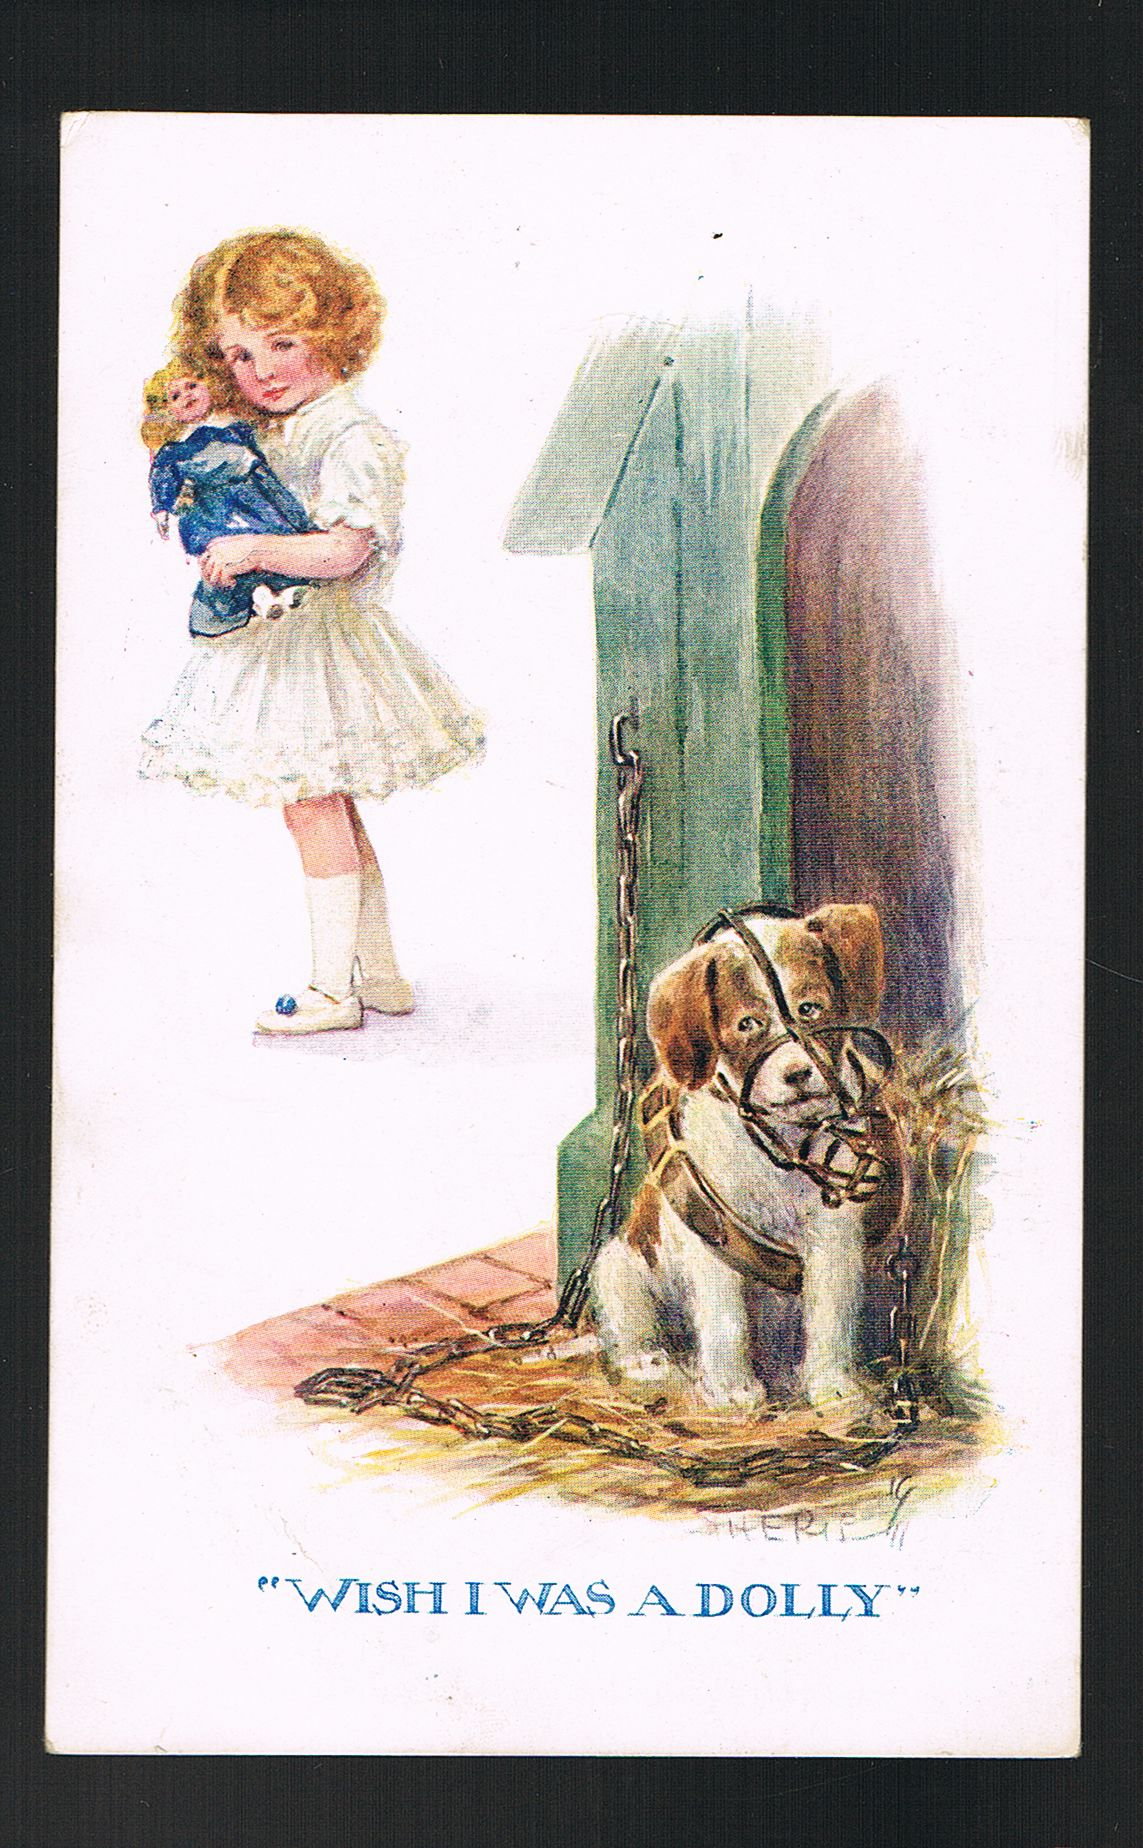 Image for Wish I Was a Dolly Postcard - Girl, Doll & Chained Muzzled Puppy Dog